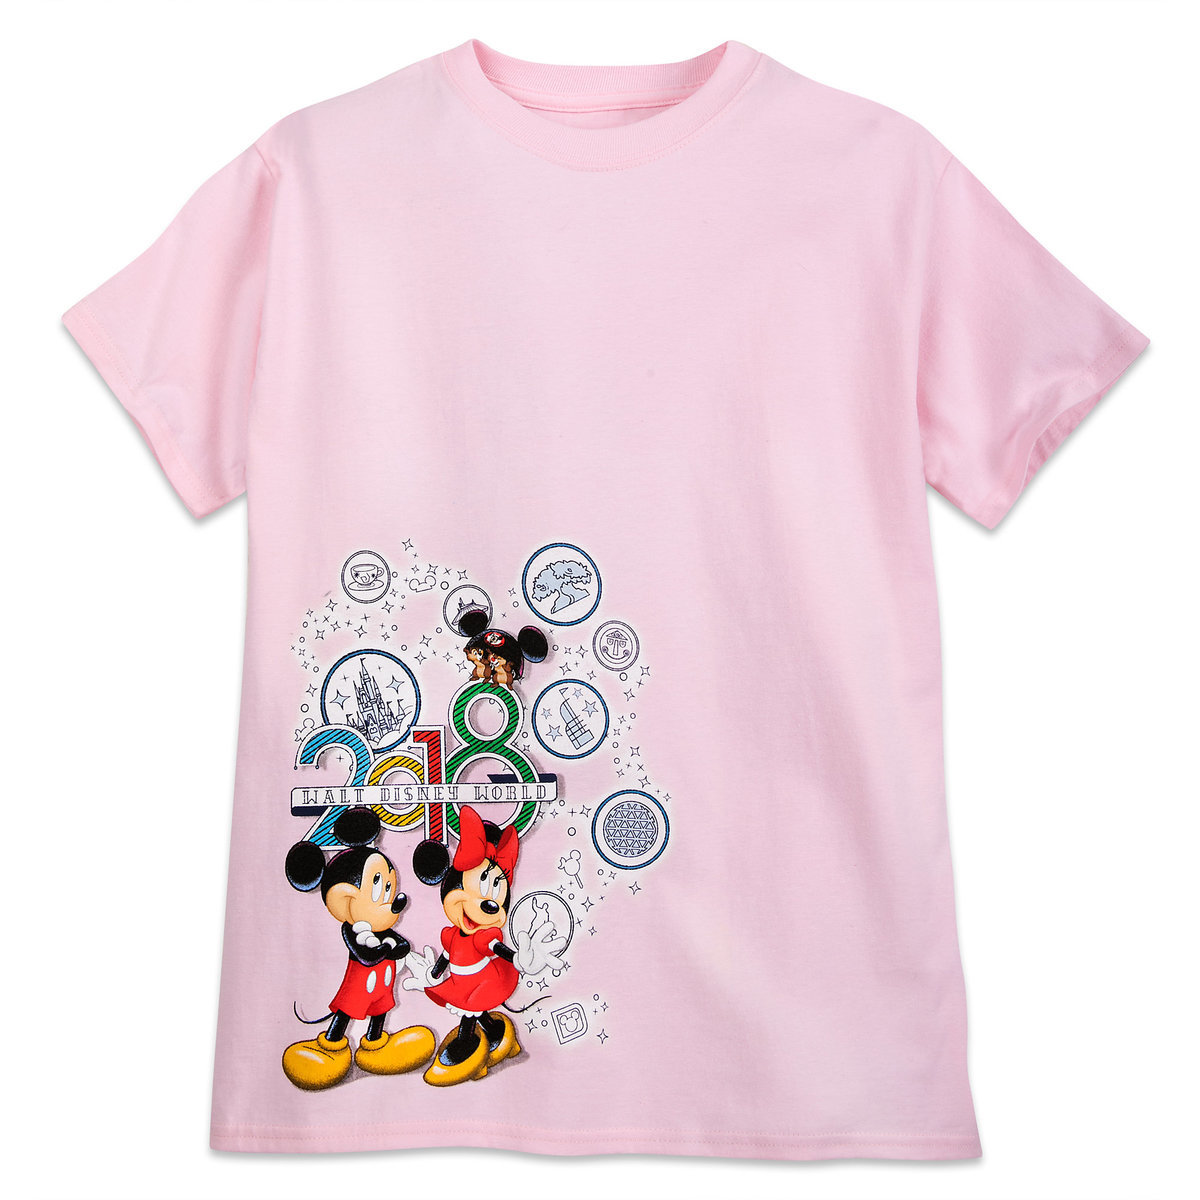 6a1bc228bf3 Product Image of Mickey Mouse and Friends T-Shirt for Kids - Walt Disney  World